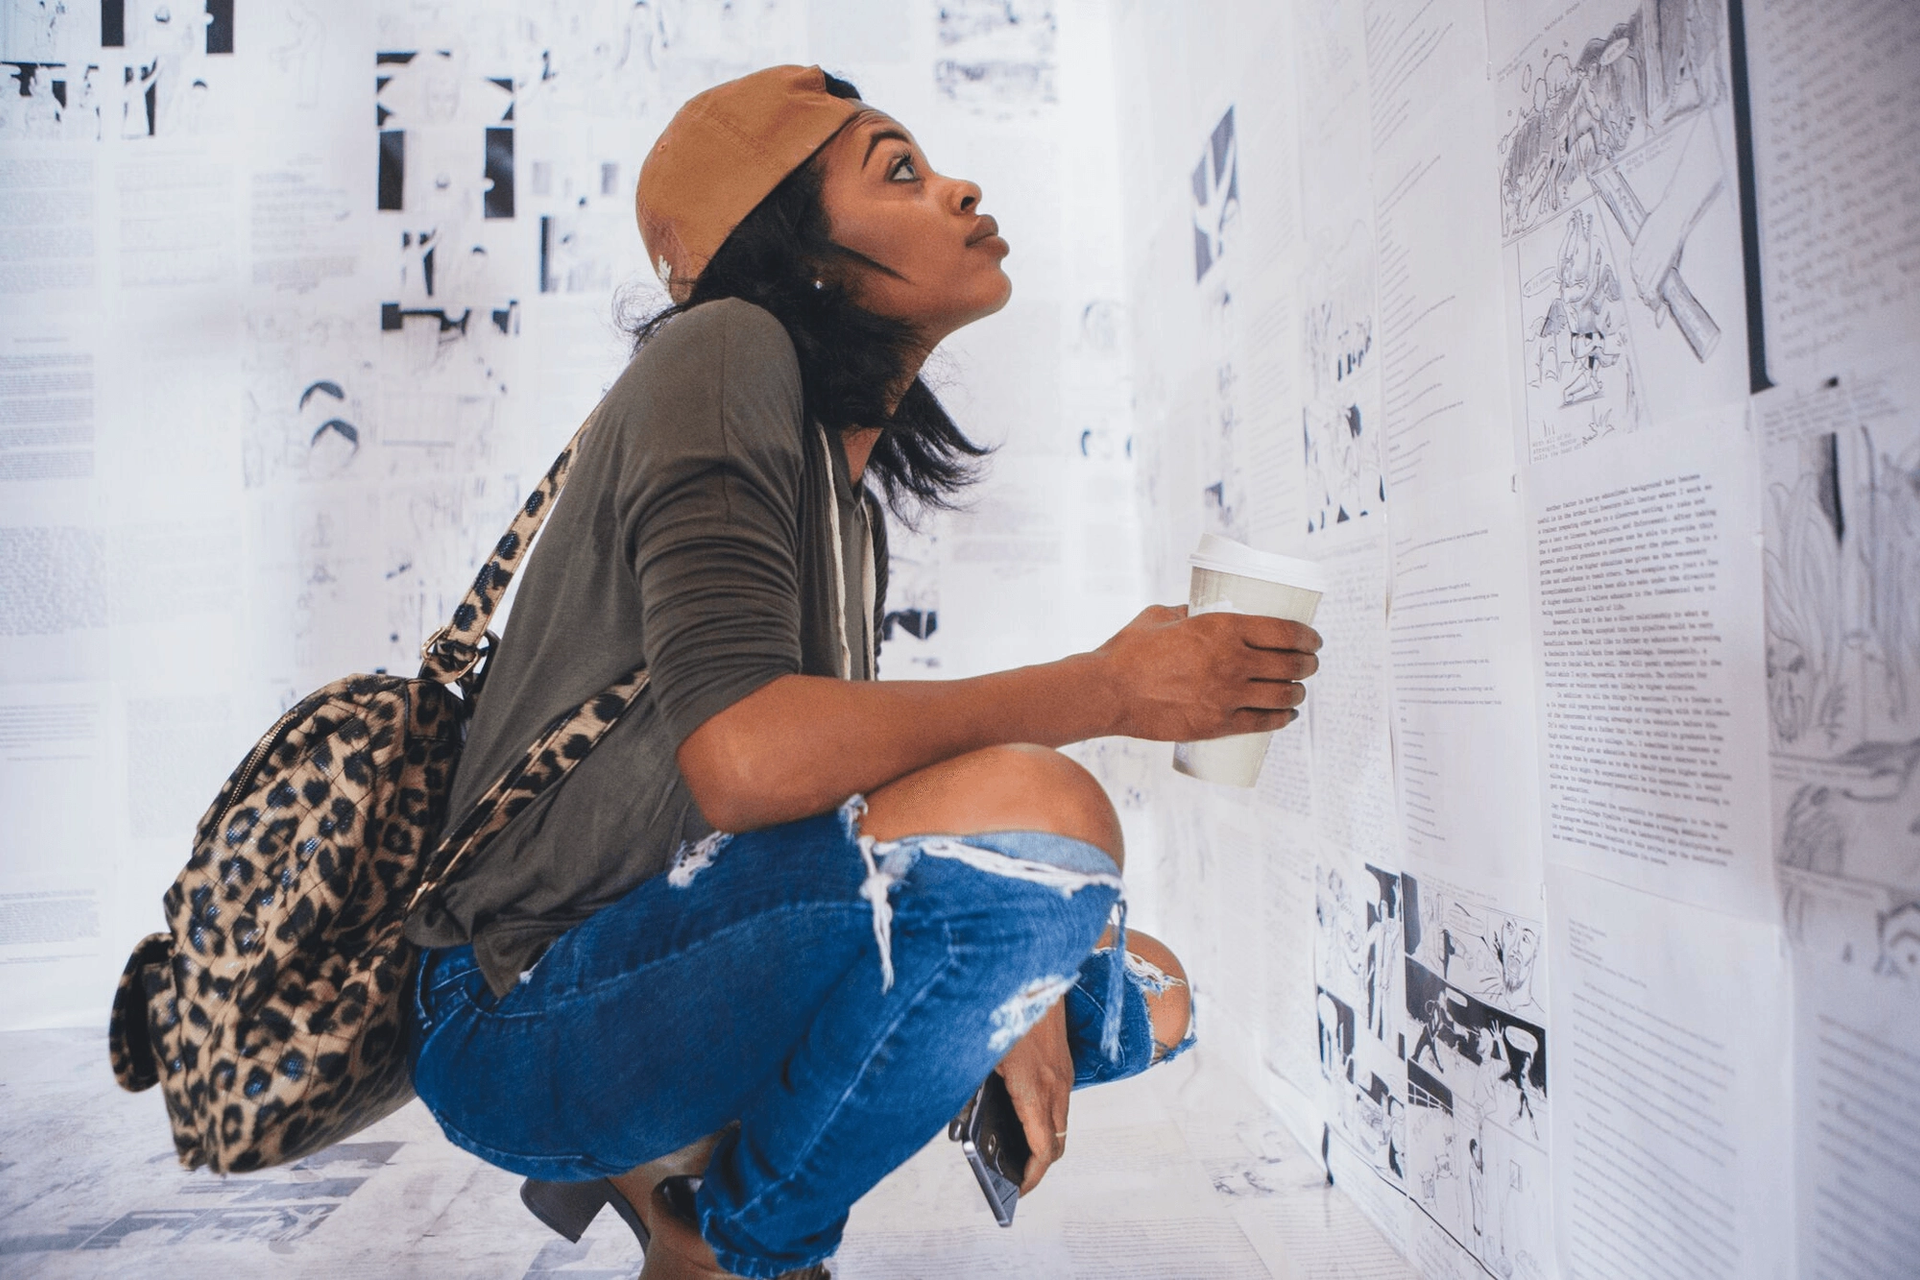 The actress Rosario Dawson views Writing on the Wall by Hank Willis Thomas and Baz Dreisinger when it was shown in New Orleans in 2015 Photo: Patrick Melon